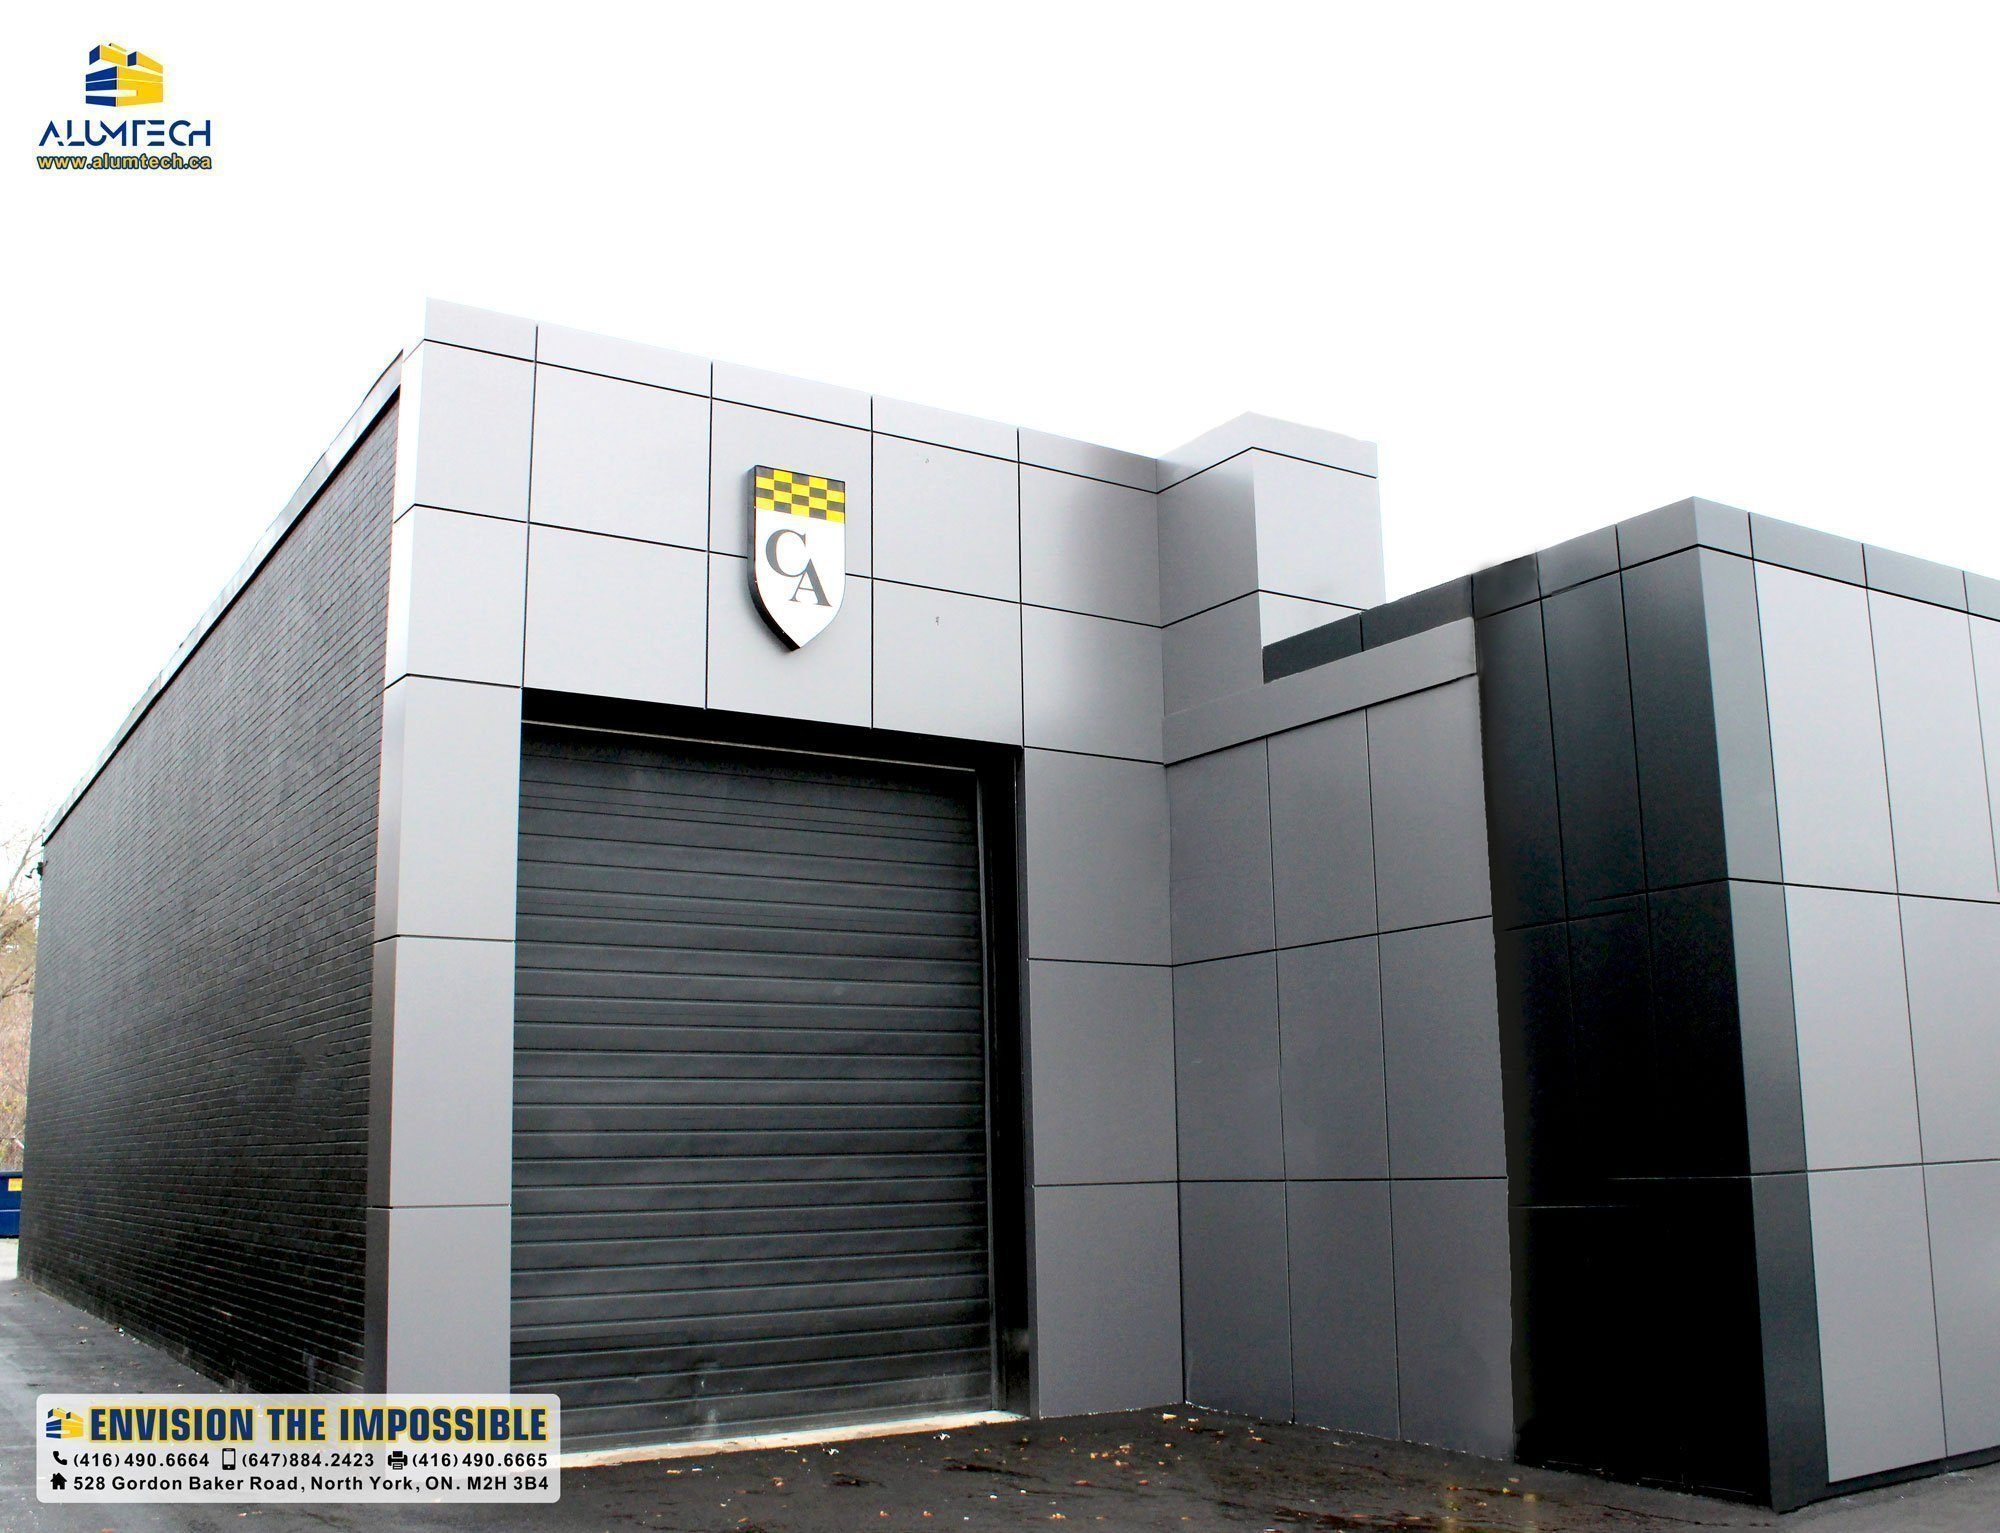 combination clad of metallic gray and black fire rated aluminum composite panel